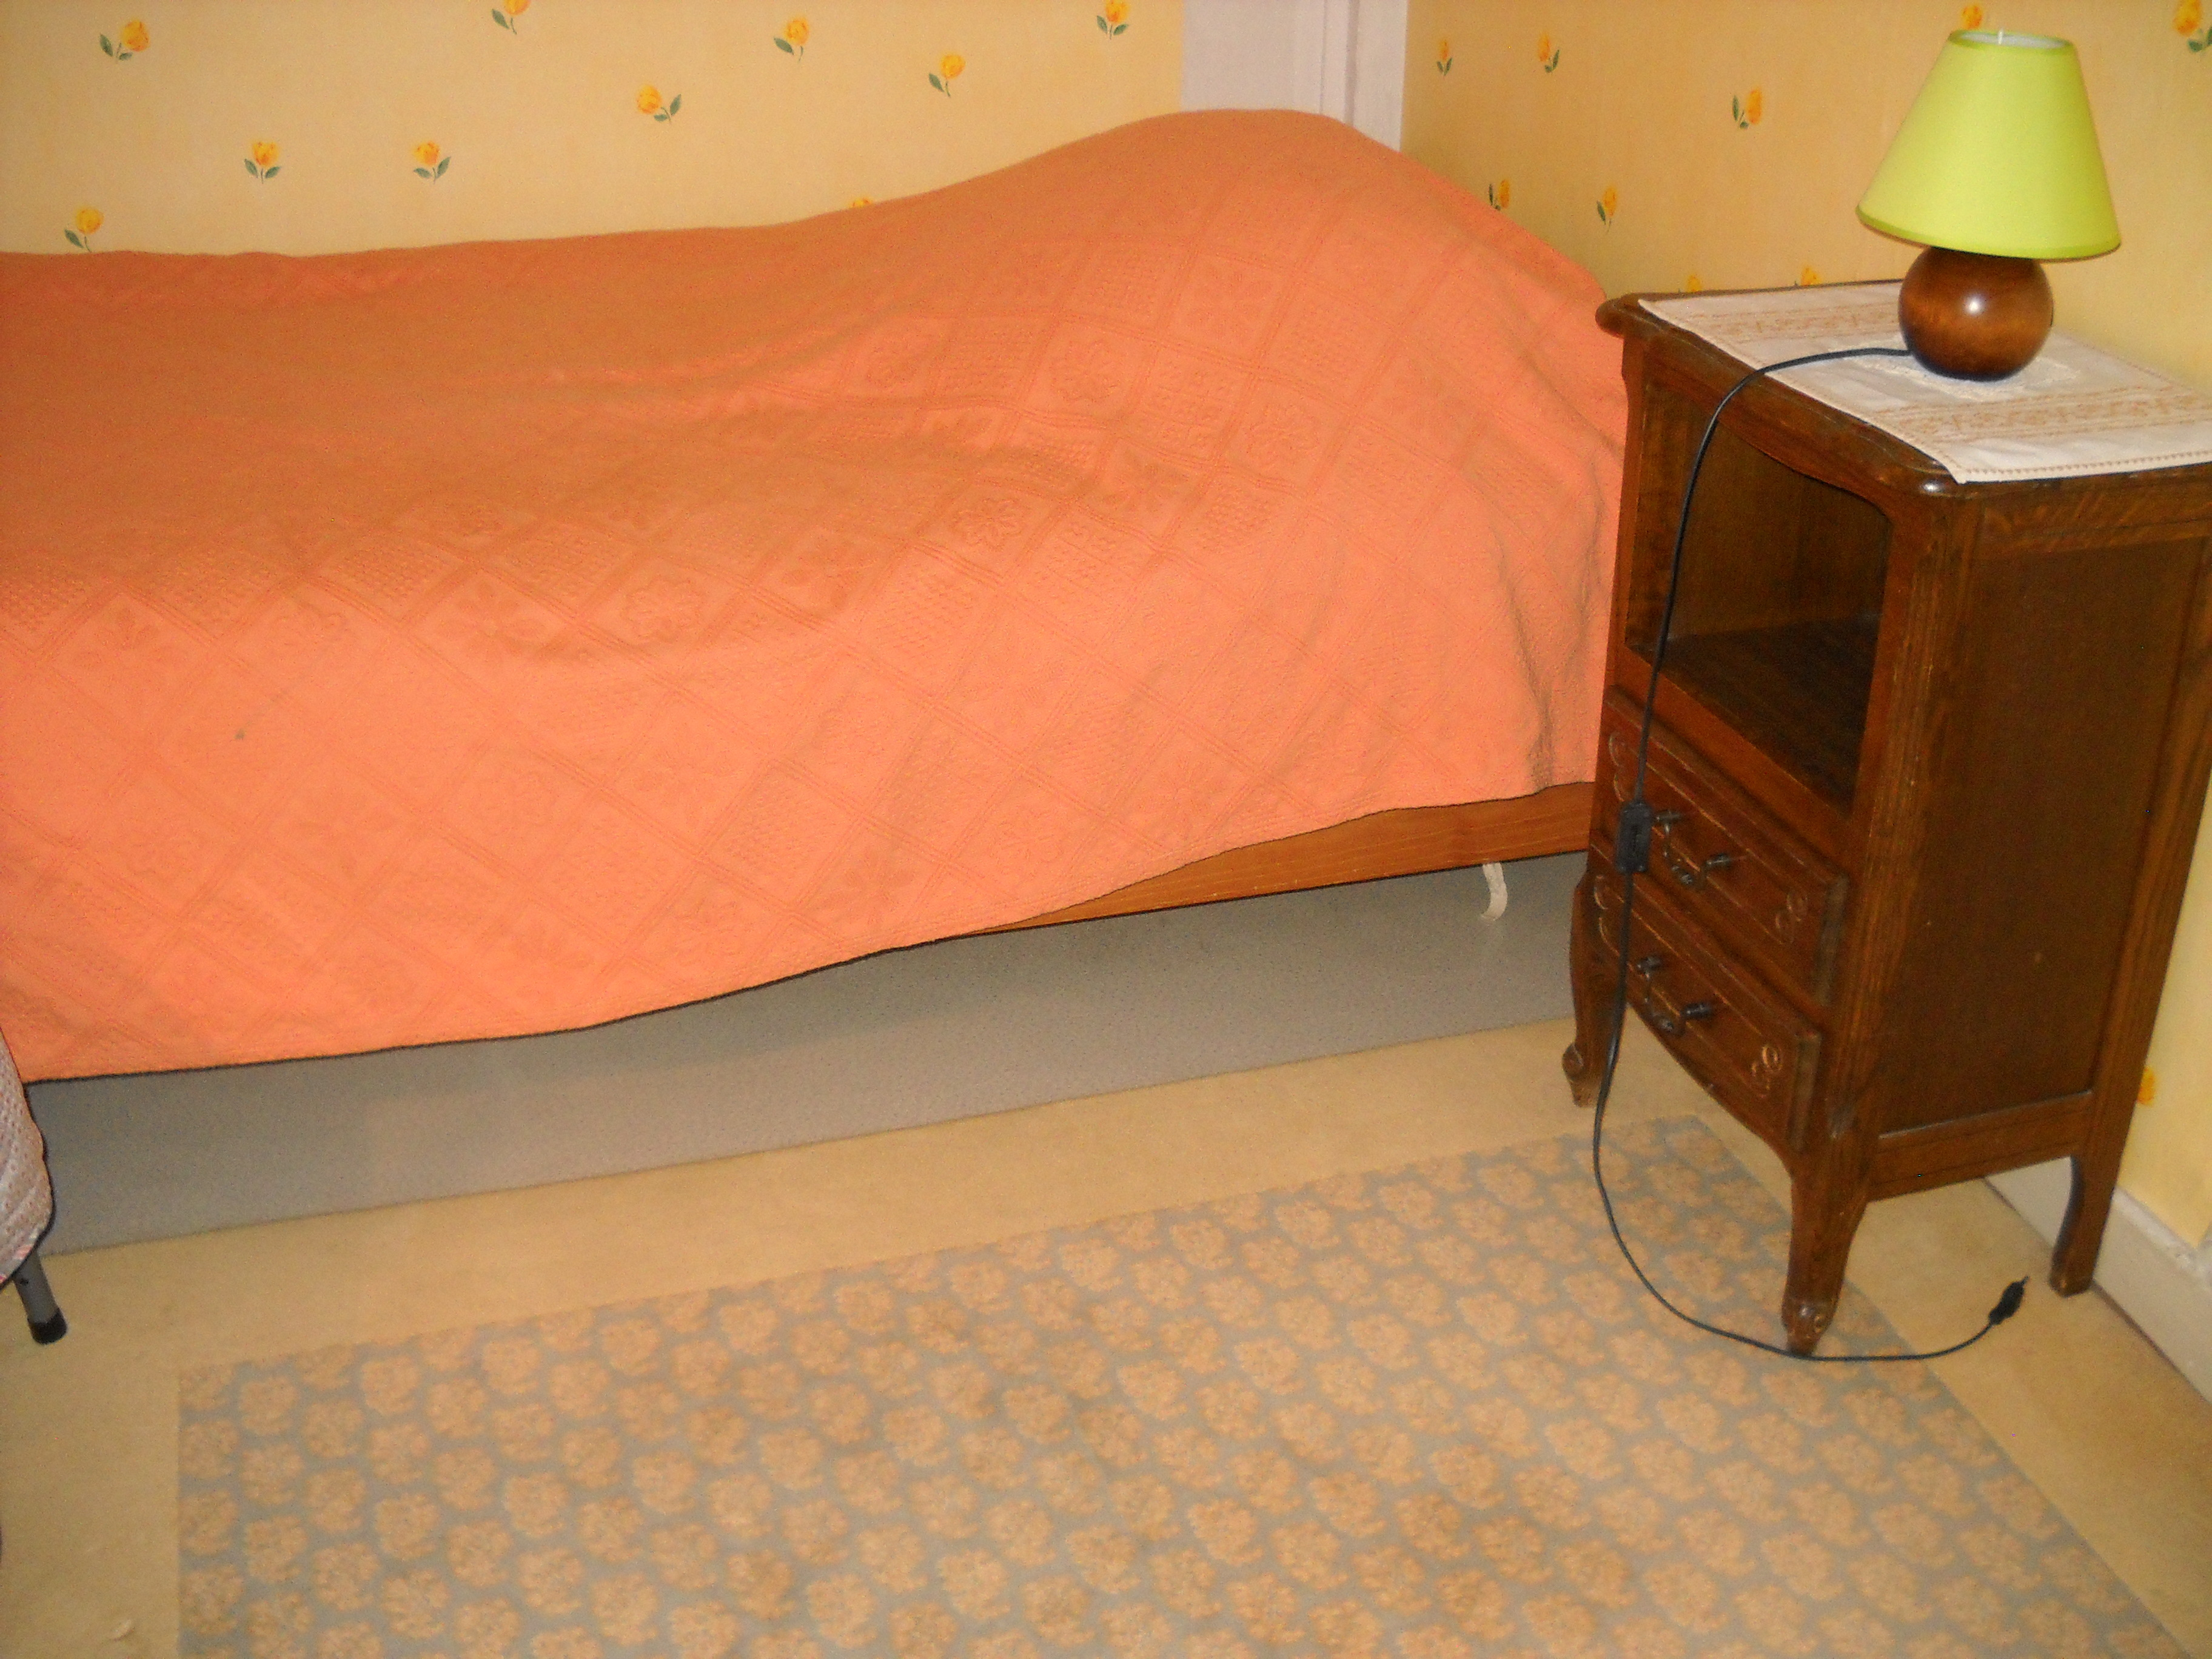 Bed And Breakfast Personne Accueillante